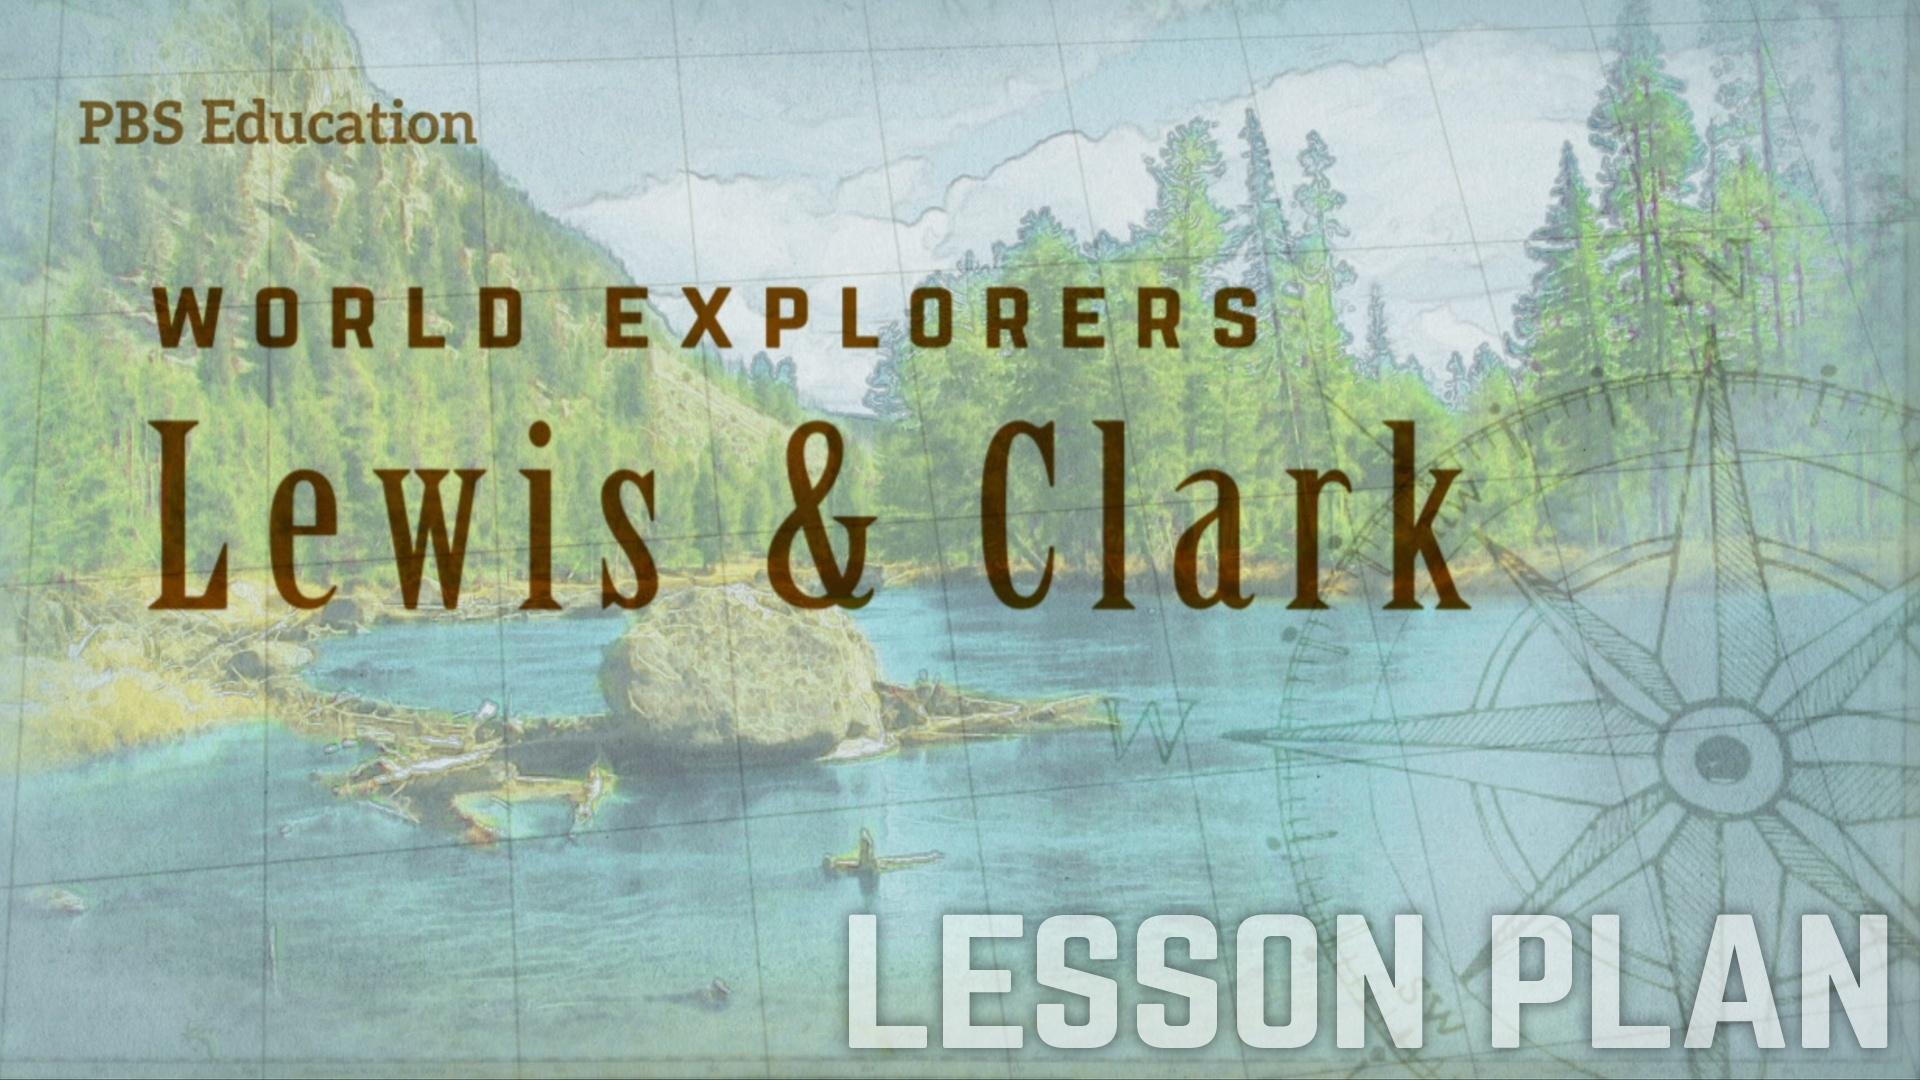 hight resolution of Lesson Plans   PBS World Explorers   PBS LearningMedia